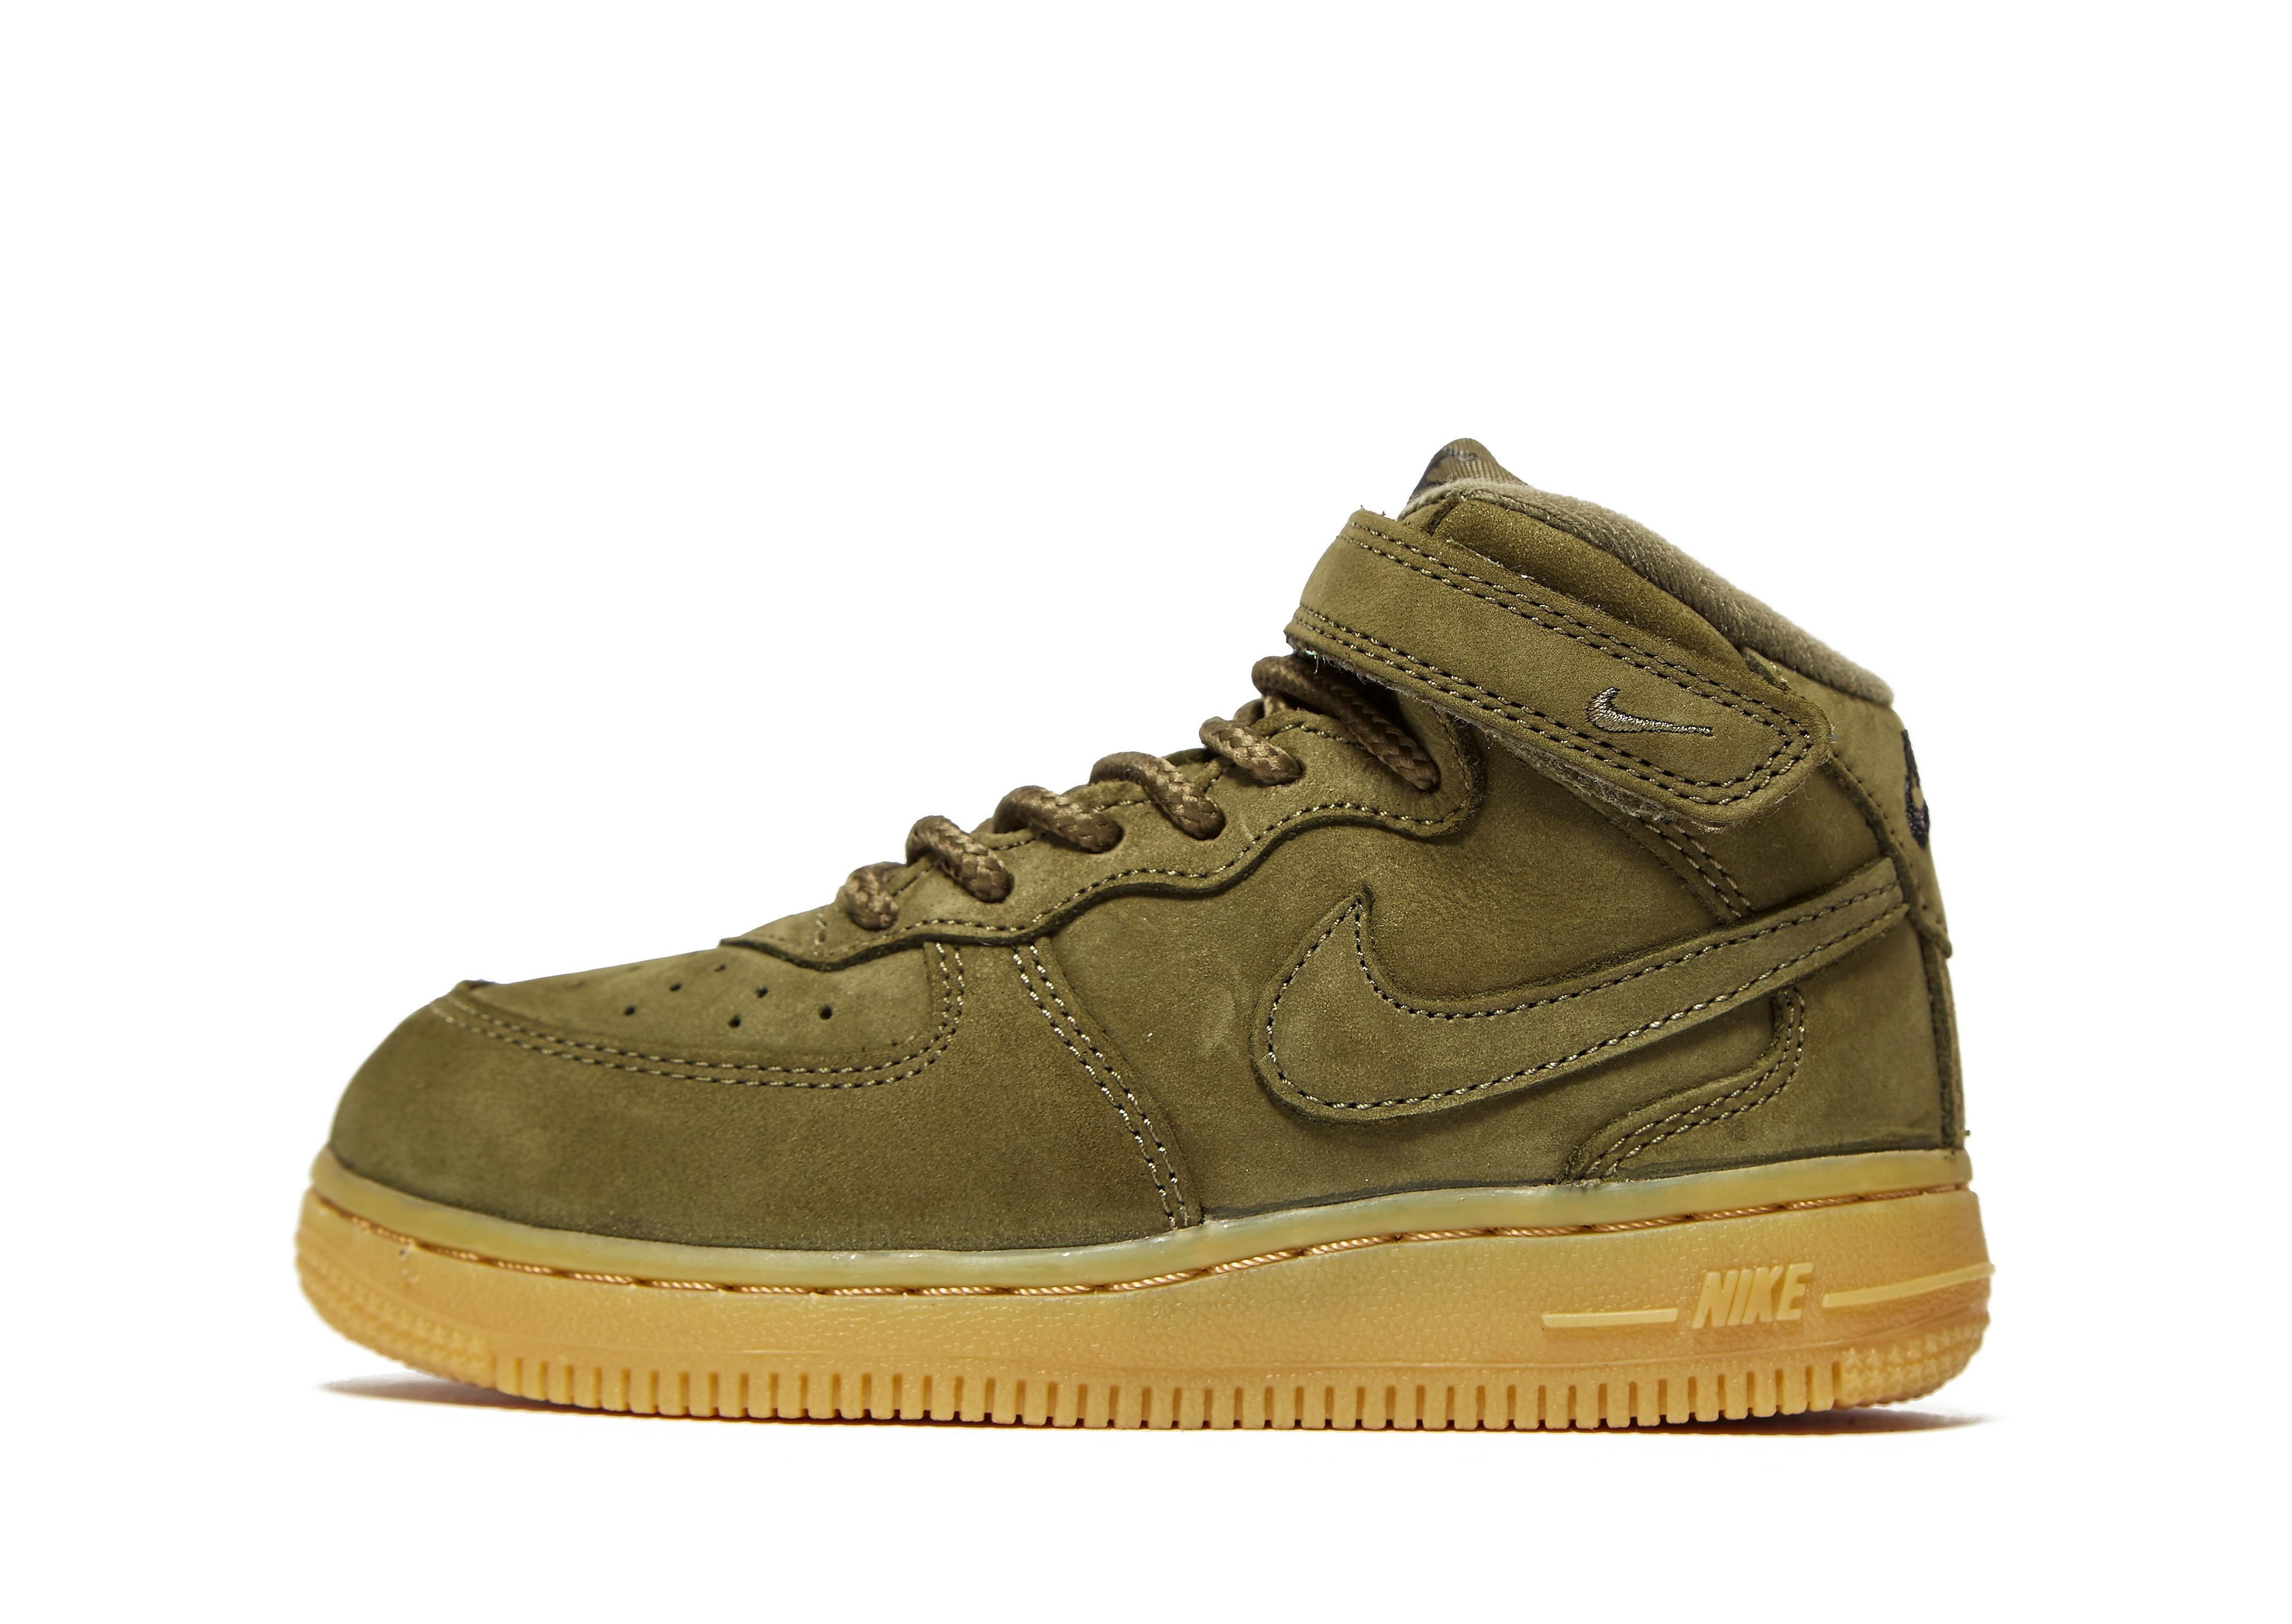 Nike Air Force 1 High WB Baby's